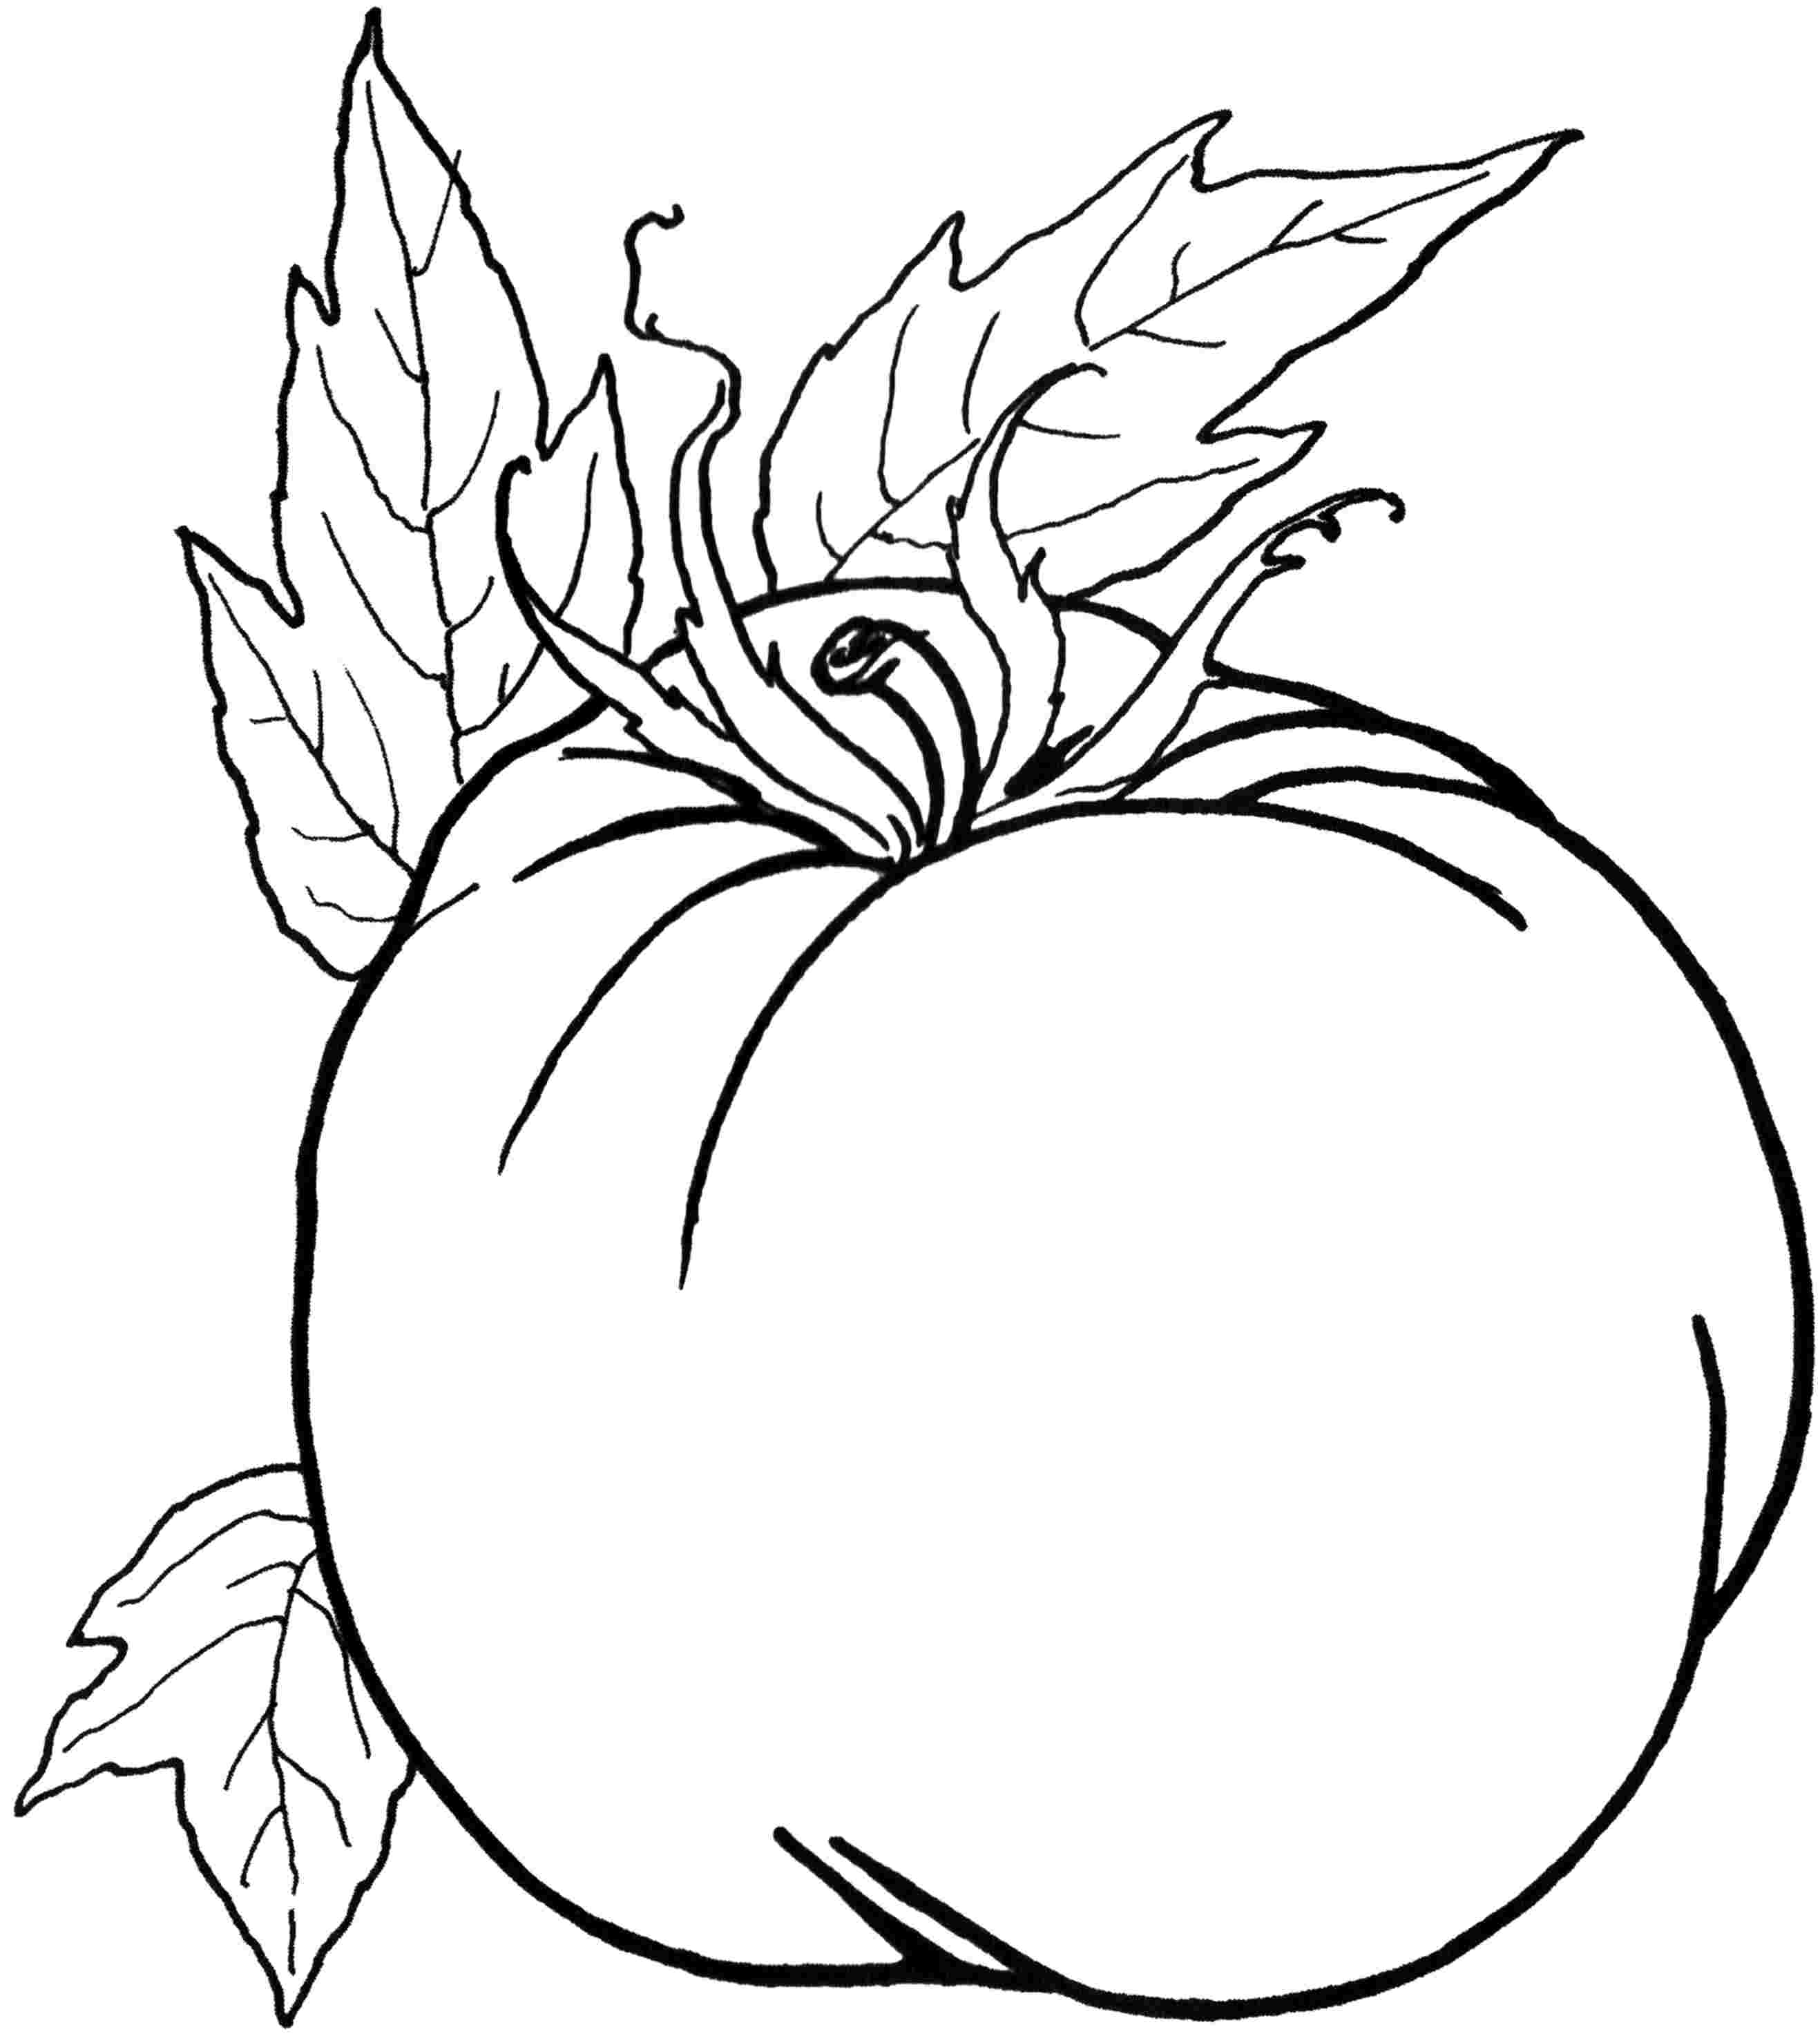 Vegetable coloring #20, Download drawings